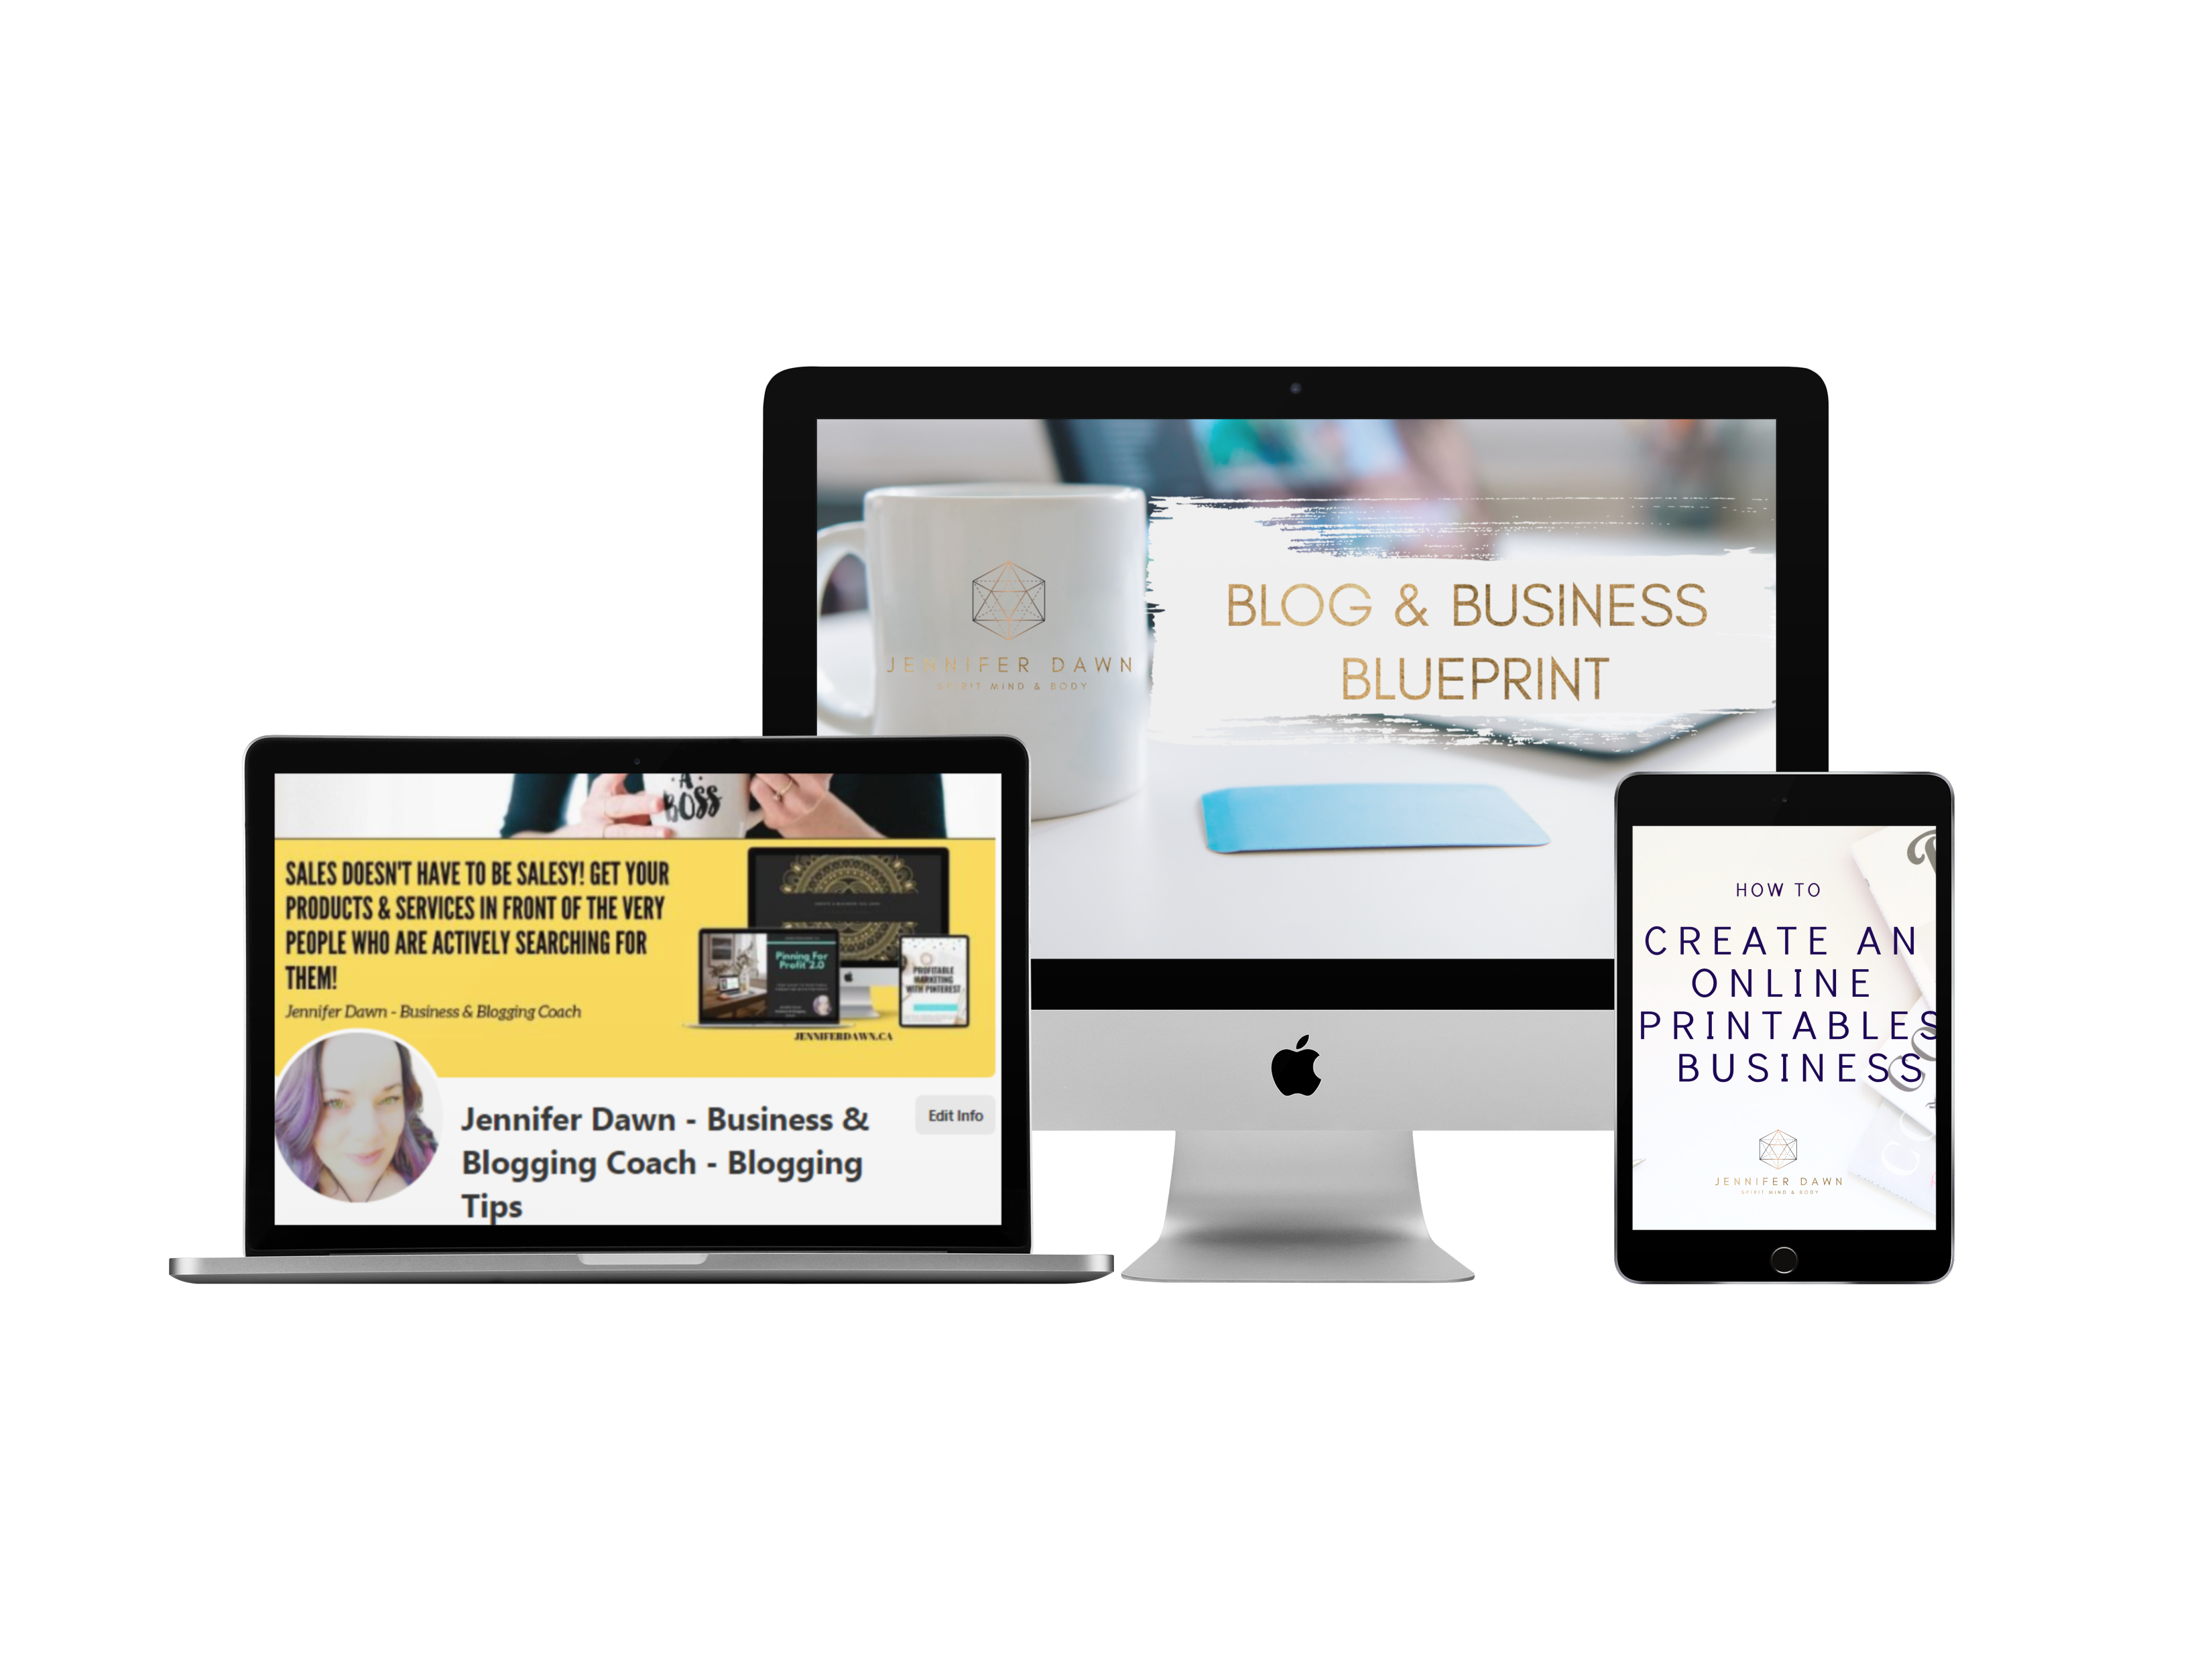 BLOG & BUSINESS BLUEPRINT